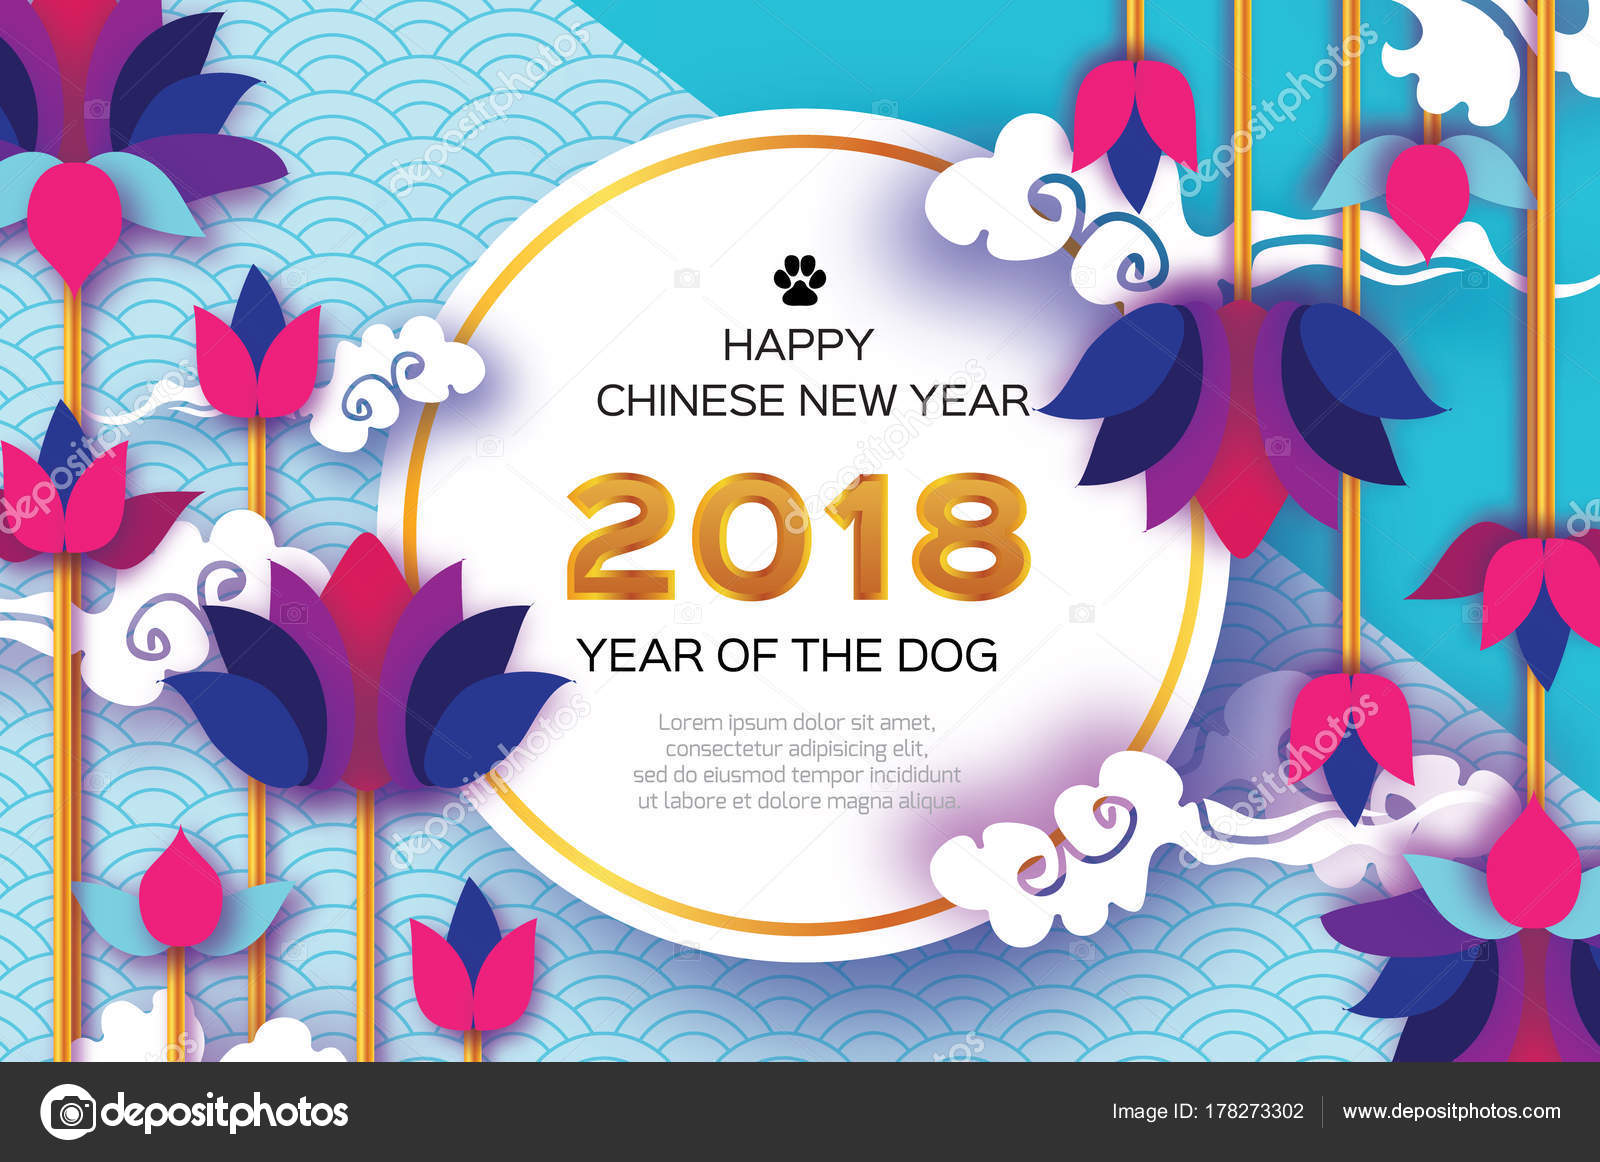 Beautiful origami waterlily or lotus flower happy chinese new year beautiful origami waterlily or lotus flower happy chinese new year 2018 greeting card year of the dog text on circle frame graceful floral background in izmirmasajfo